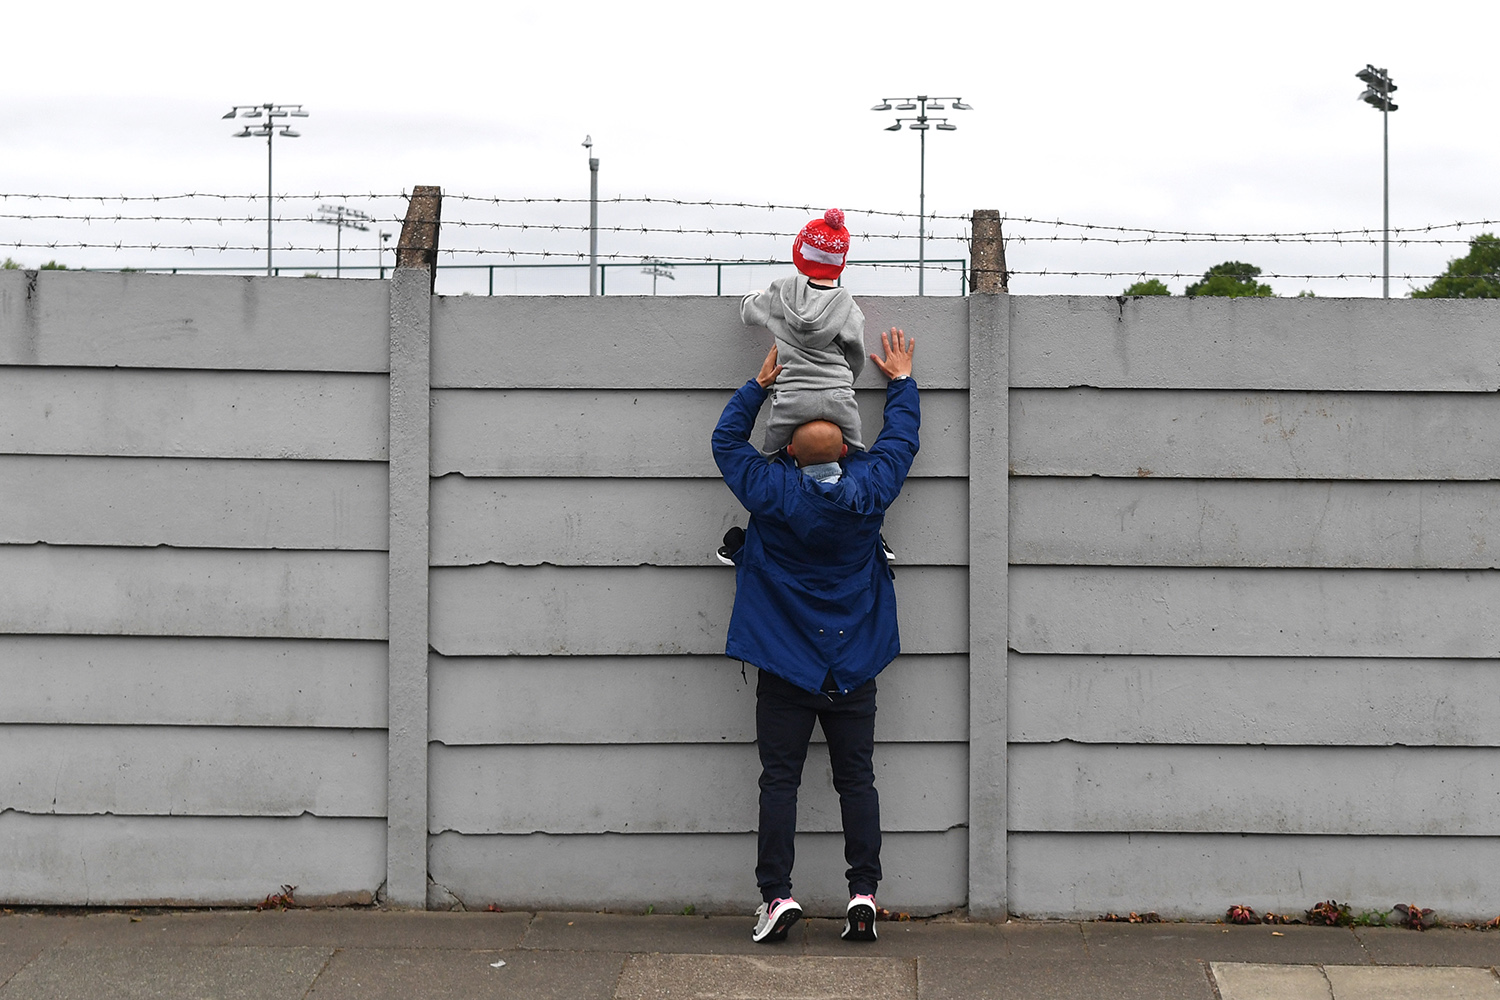 A father holds up his son so he can see over the fence at Melwood training ground, a playing field for the Liverpool Football Club, as players resume training May 19 in Liverpool. PAUL ELLIS/AFP via Getty Images